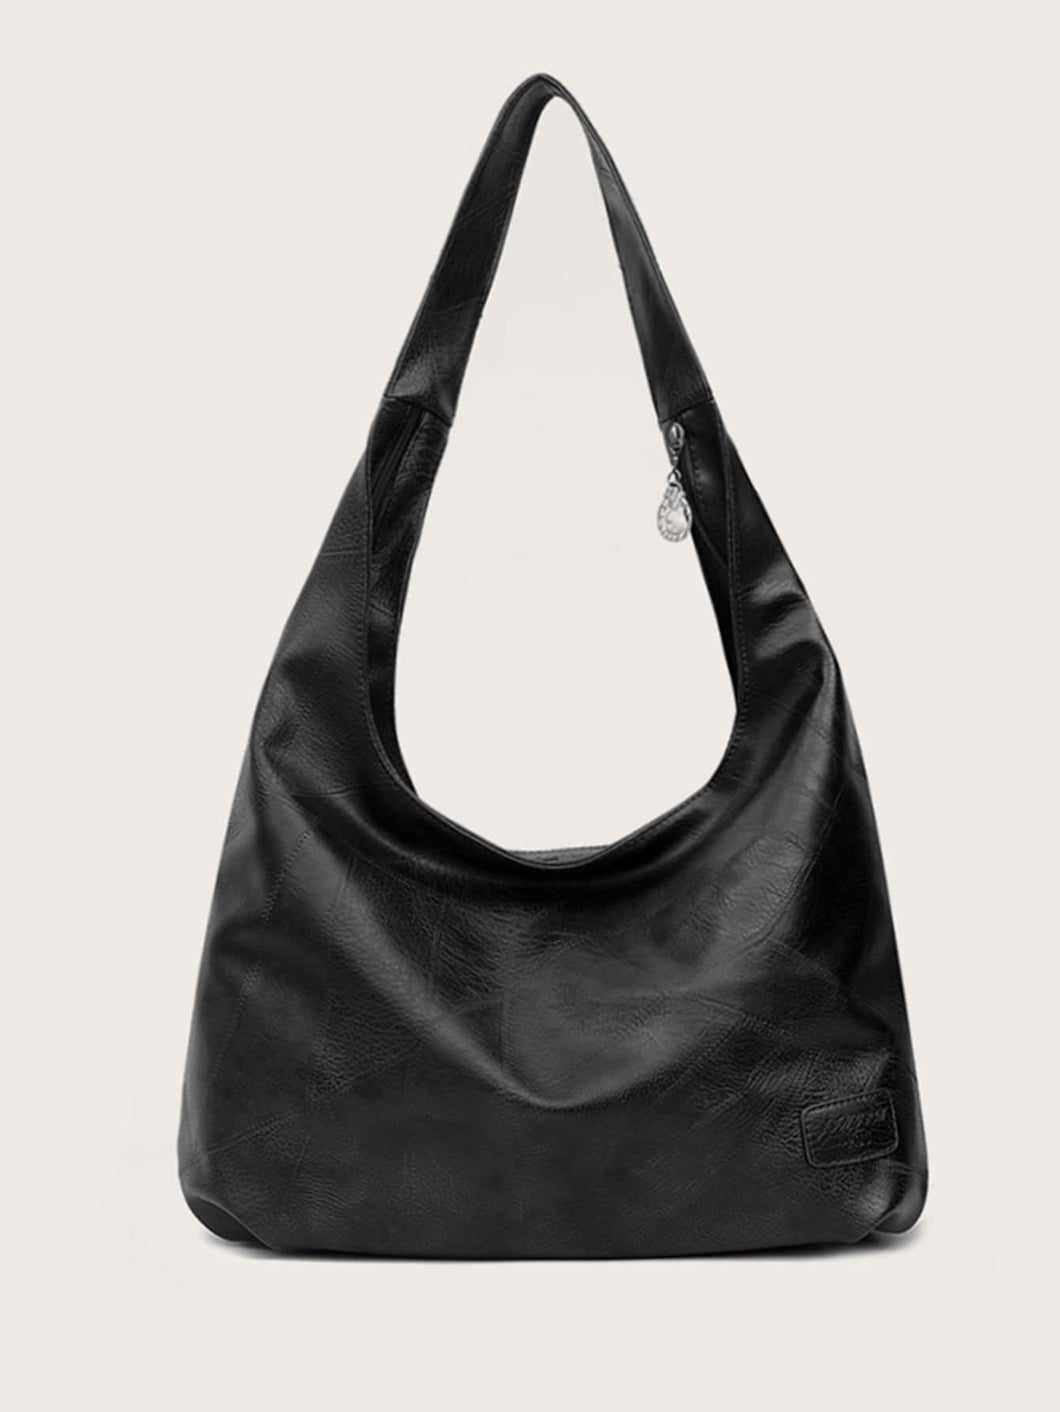 Minimalist Hobo Bag